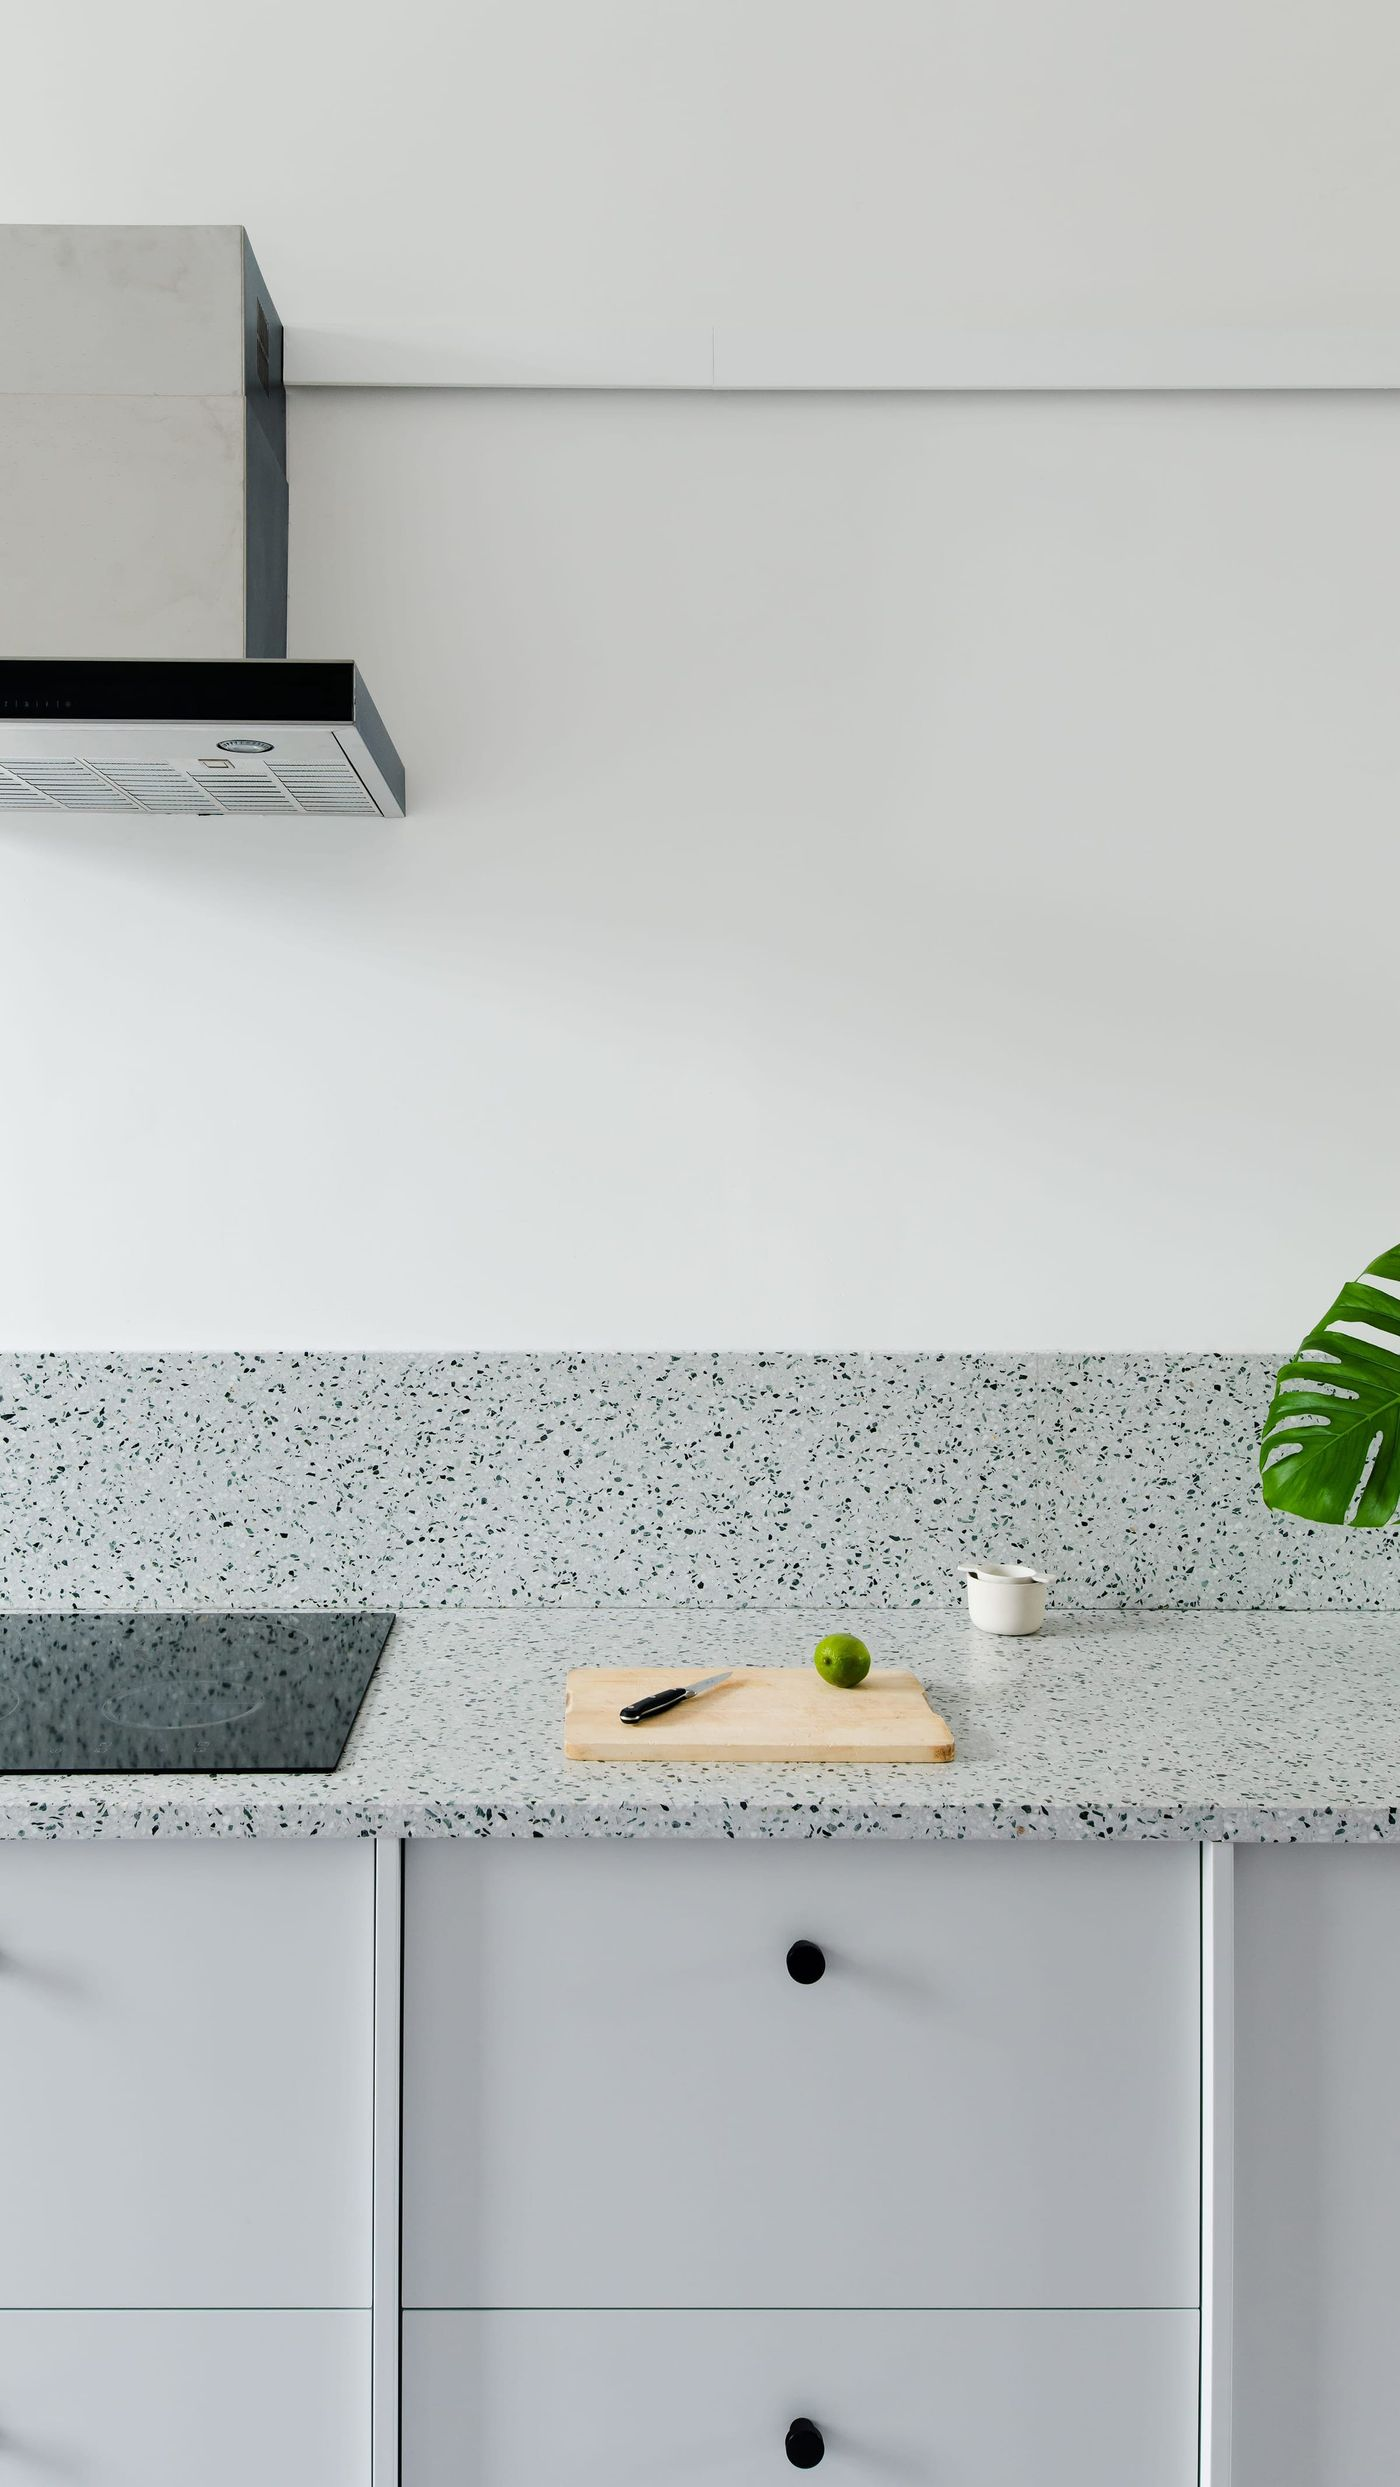 Bespoke kitchen kitchen details of light grey cabinets and terrazzo worktop in Kelham Island, Sheffield designed by From Works.